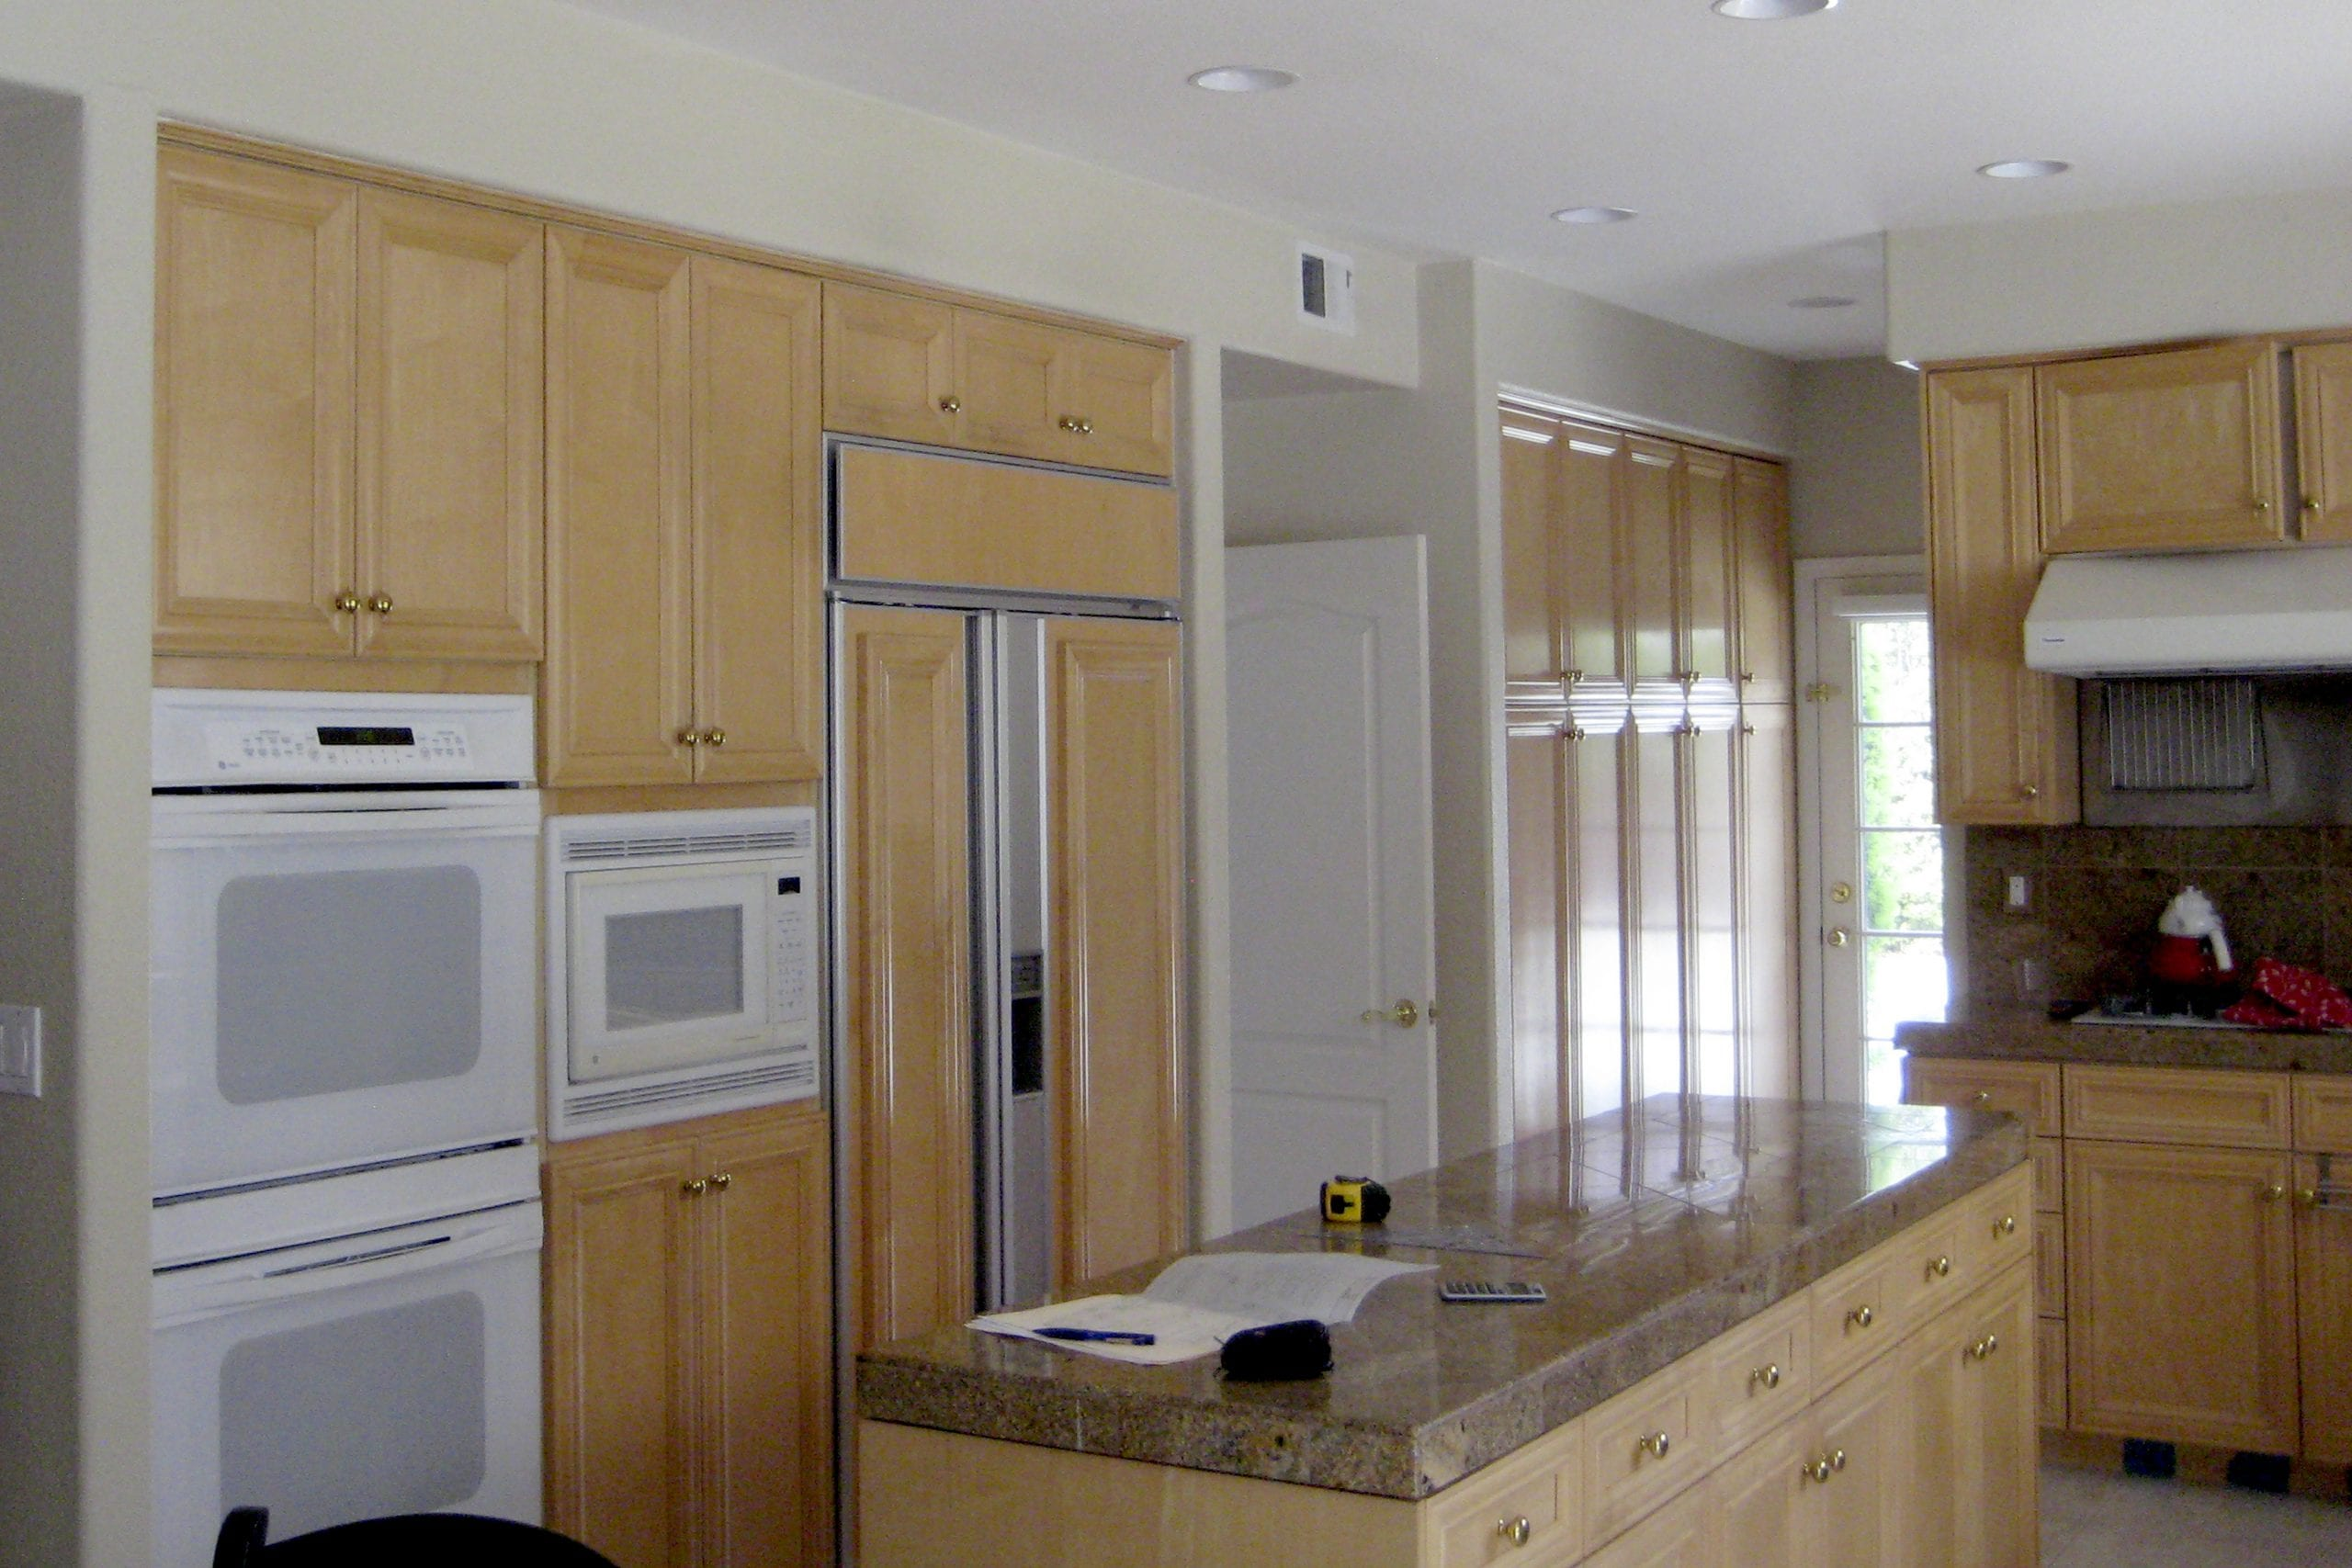 Epicurean kitchen remodel before photo